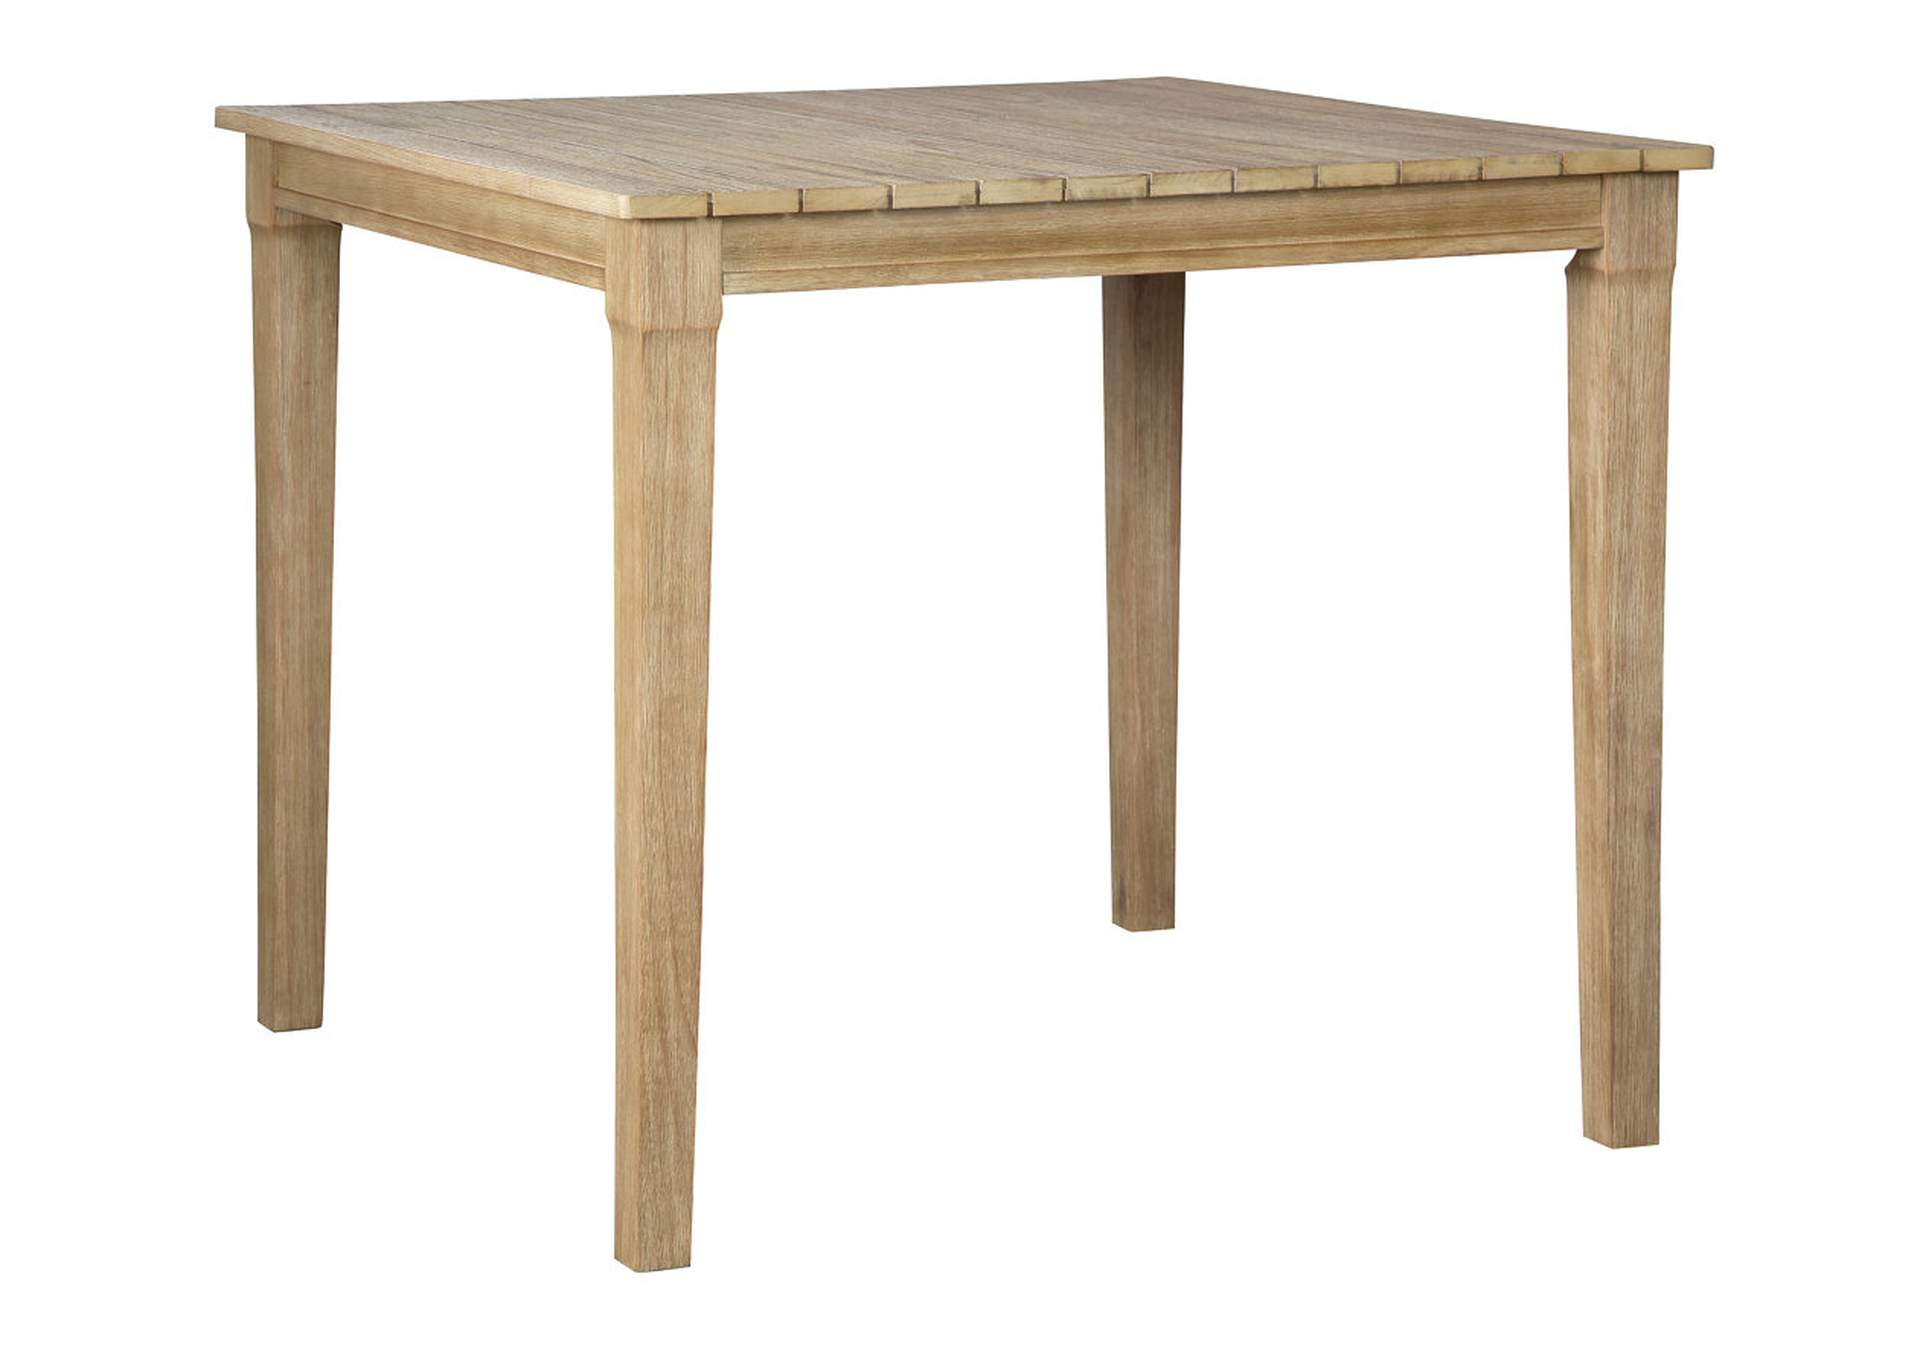 Clare View Bar Table,Direct To Consumer Express